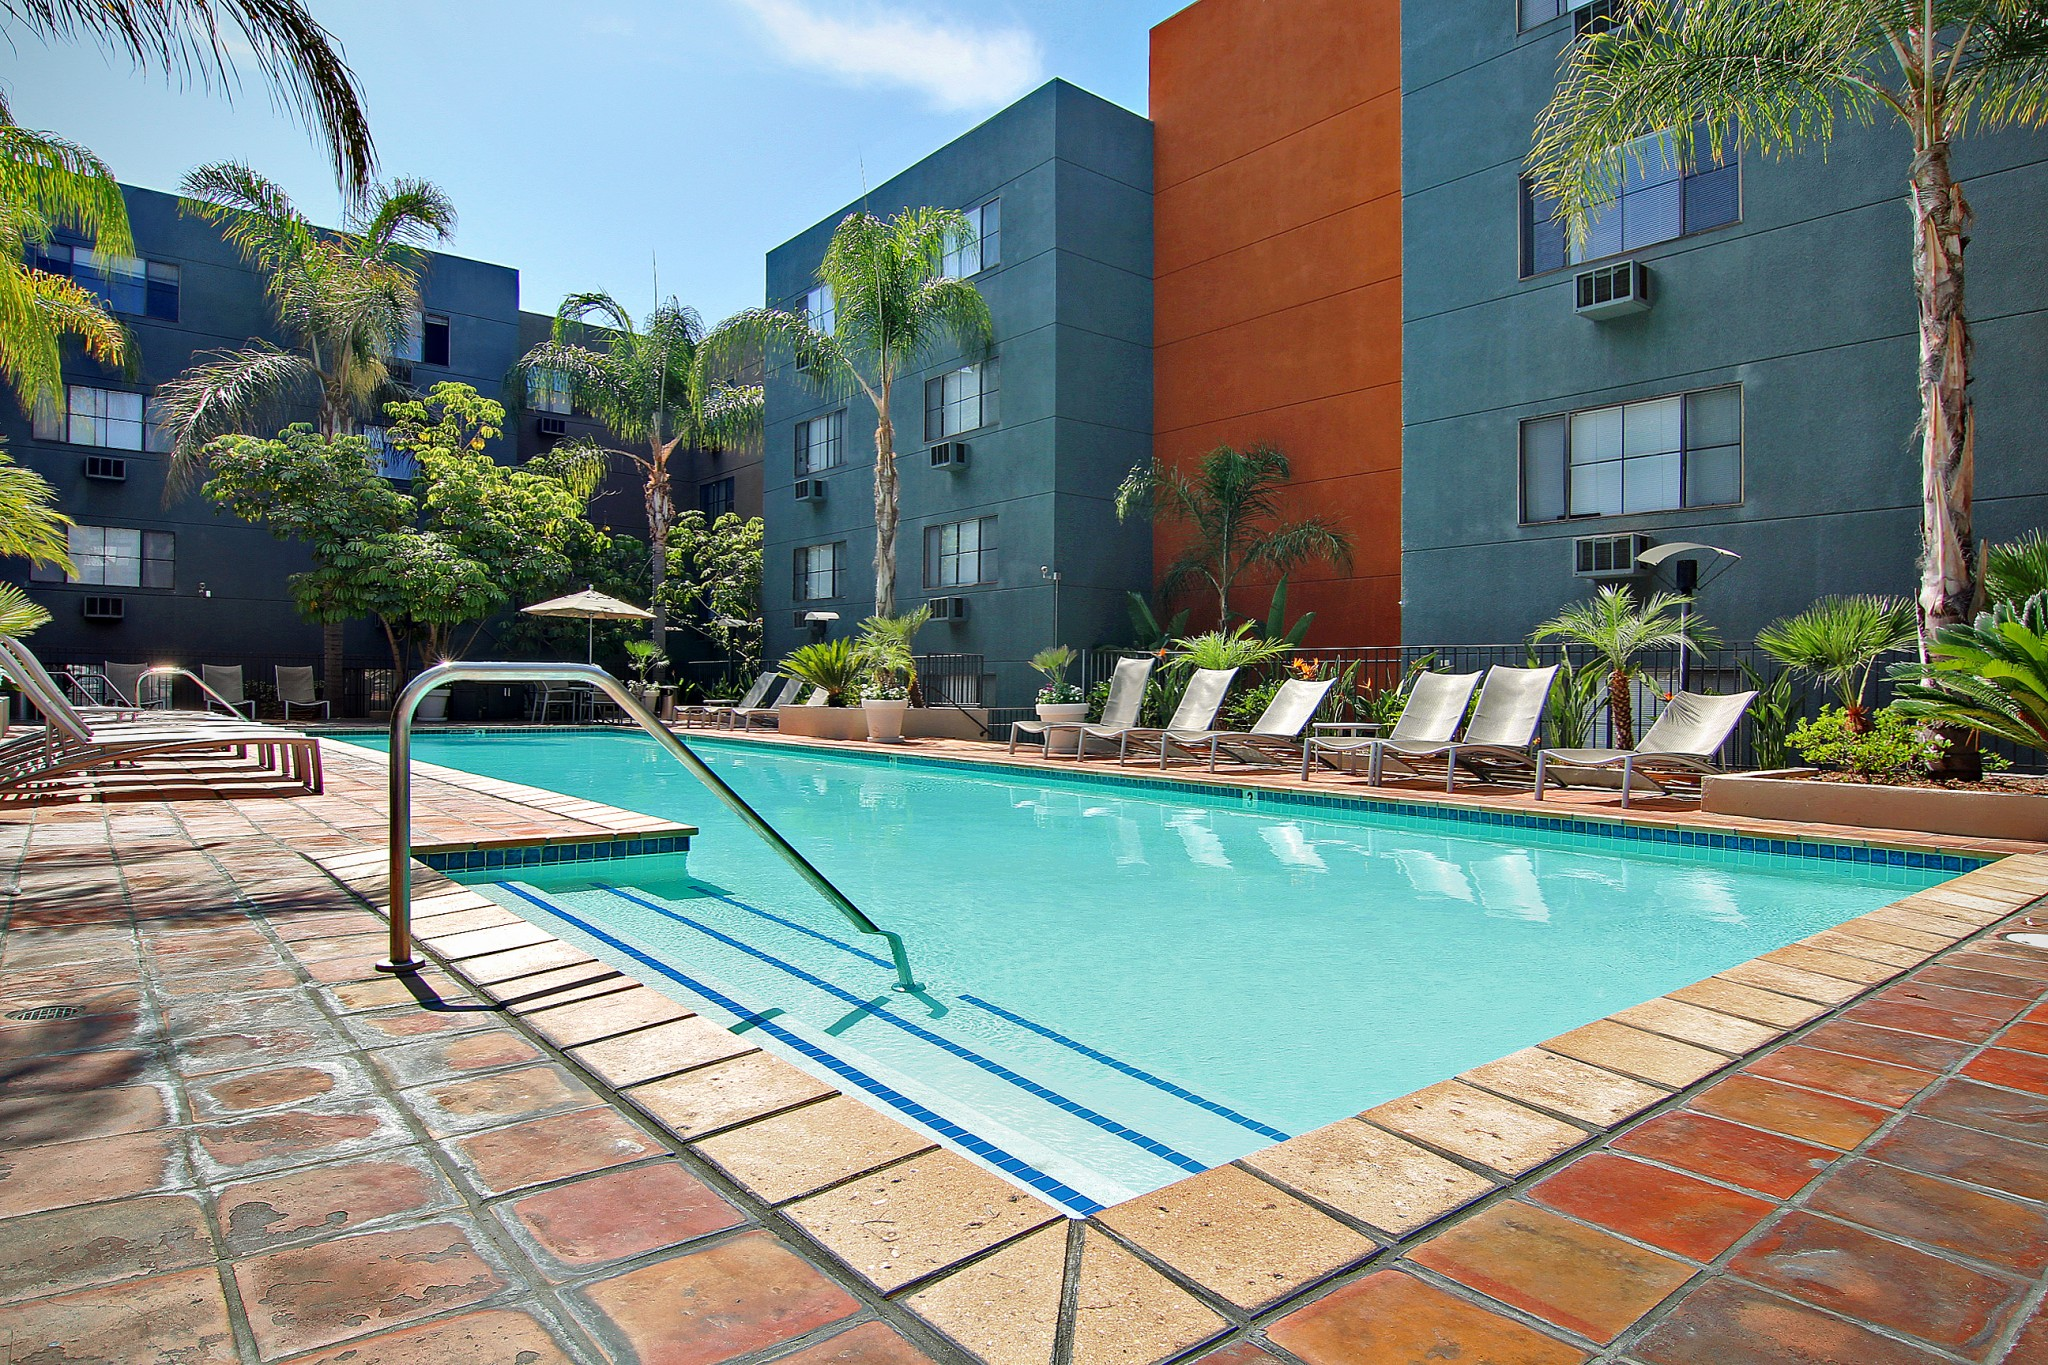 View of courtyard pool with lounge chairs, trees, and building in the background..